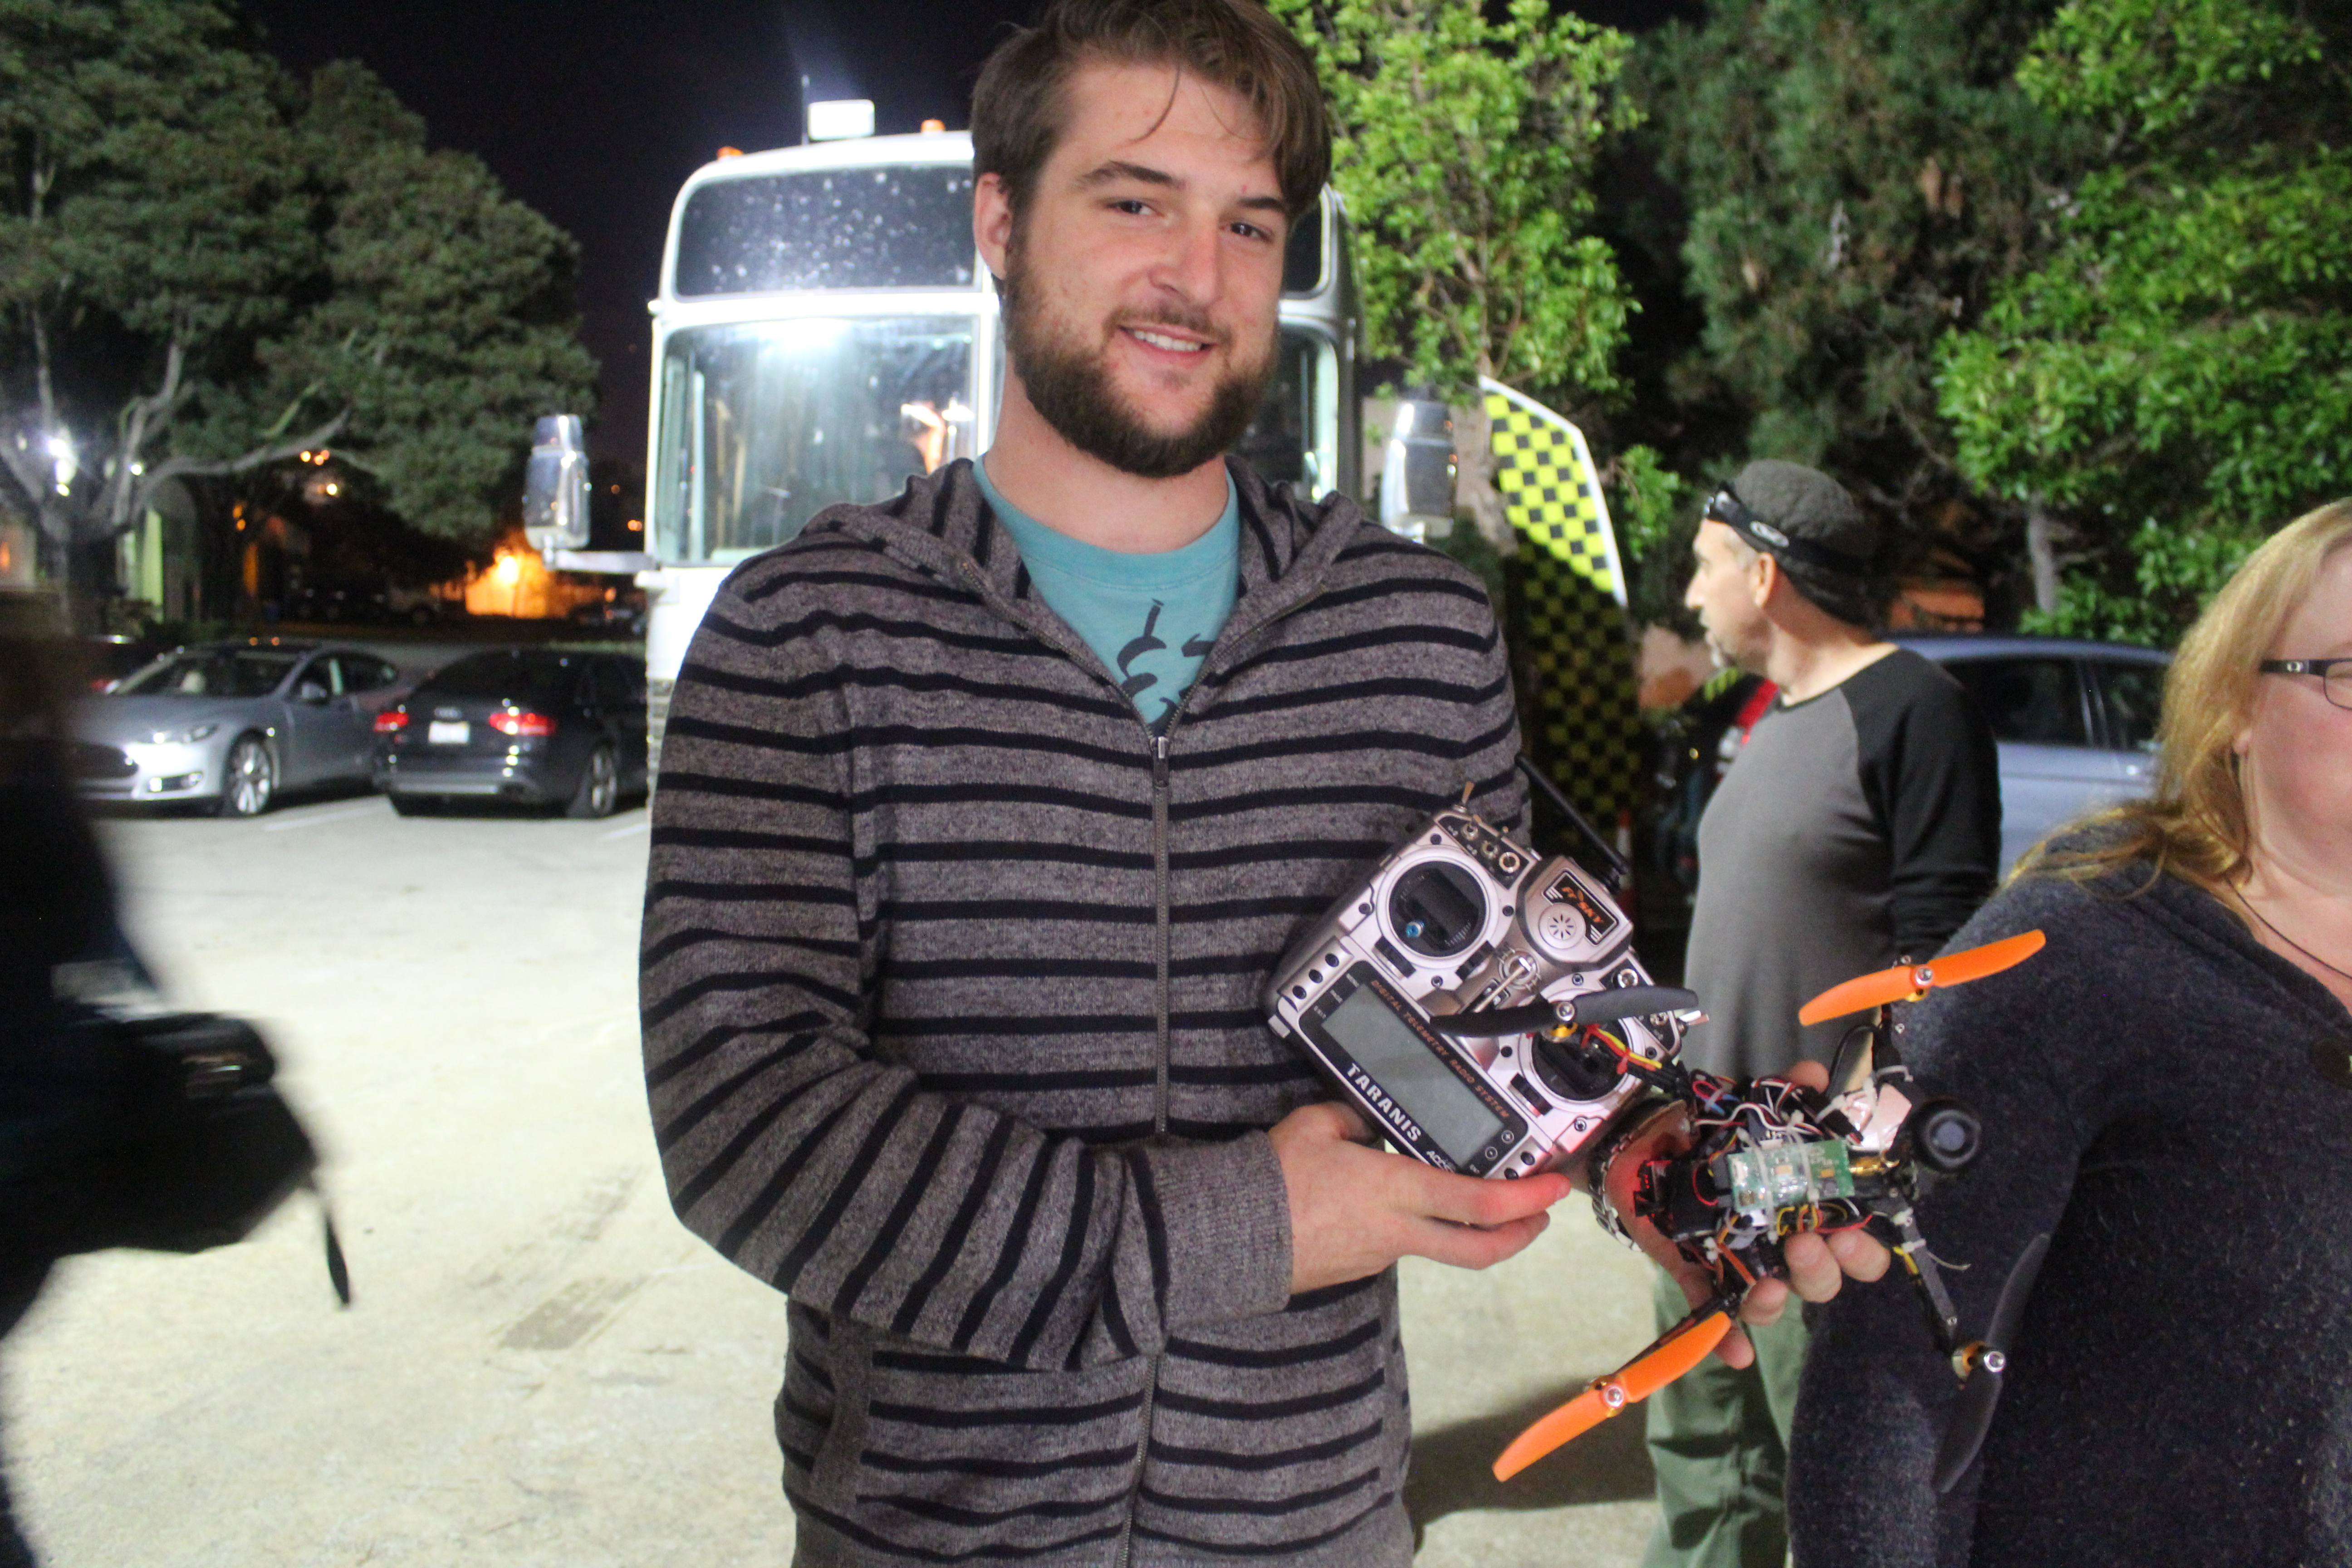 Kurt, a Silicon Valley software engineer, shows off his homemade mini-drone outside the fight club space. (Phoebe Barghouty/Peninsula Press)